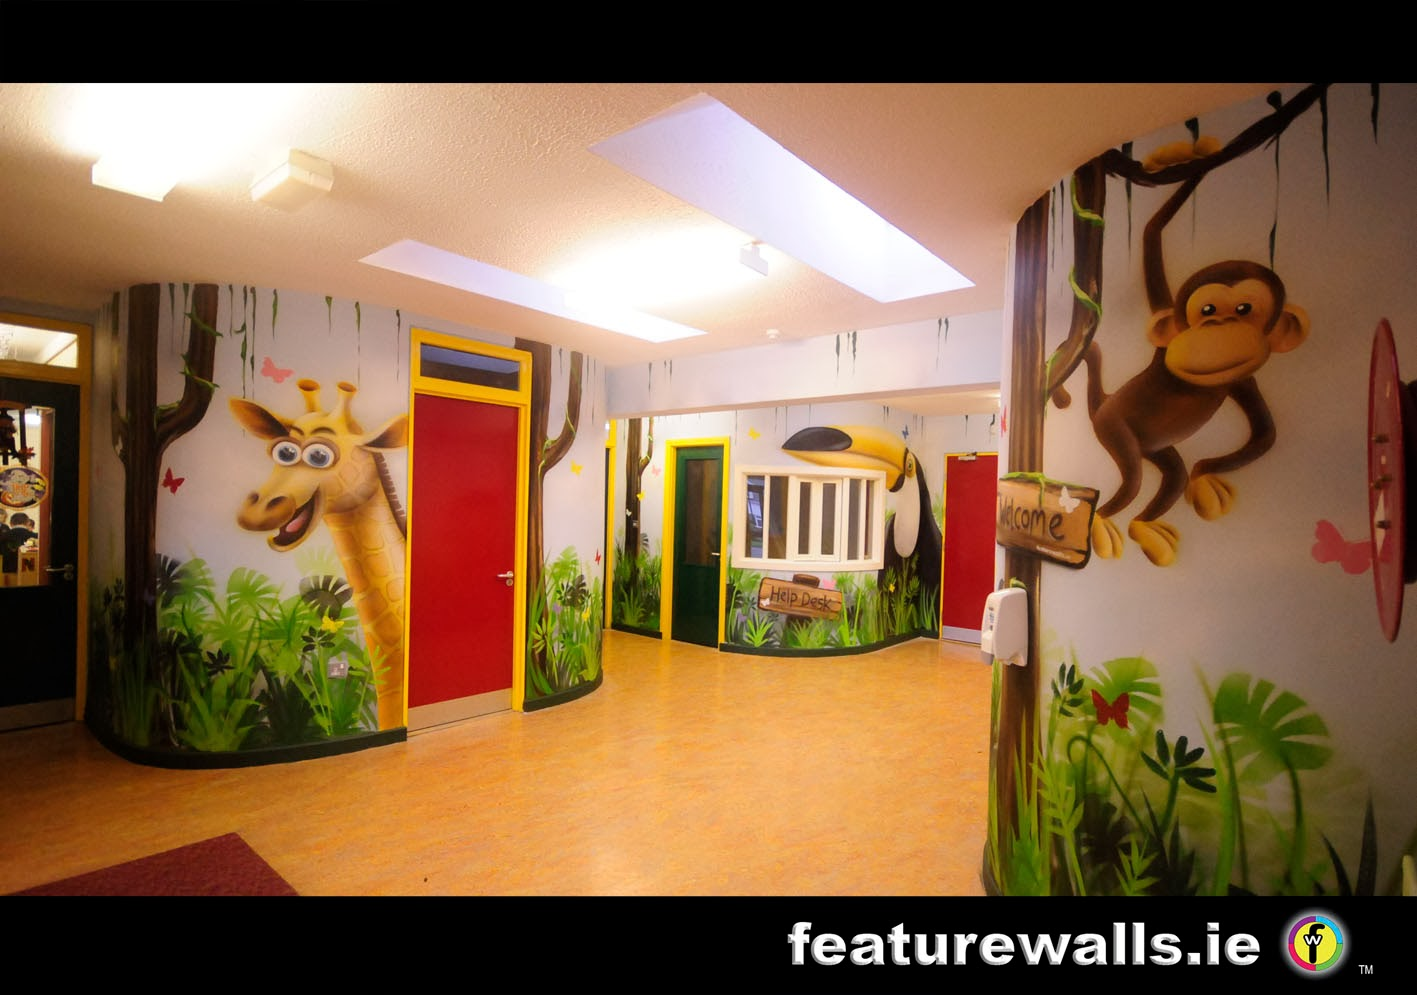 Mural Painting Professionals featurewalls.ie: NATIONAL ...